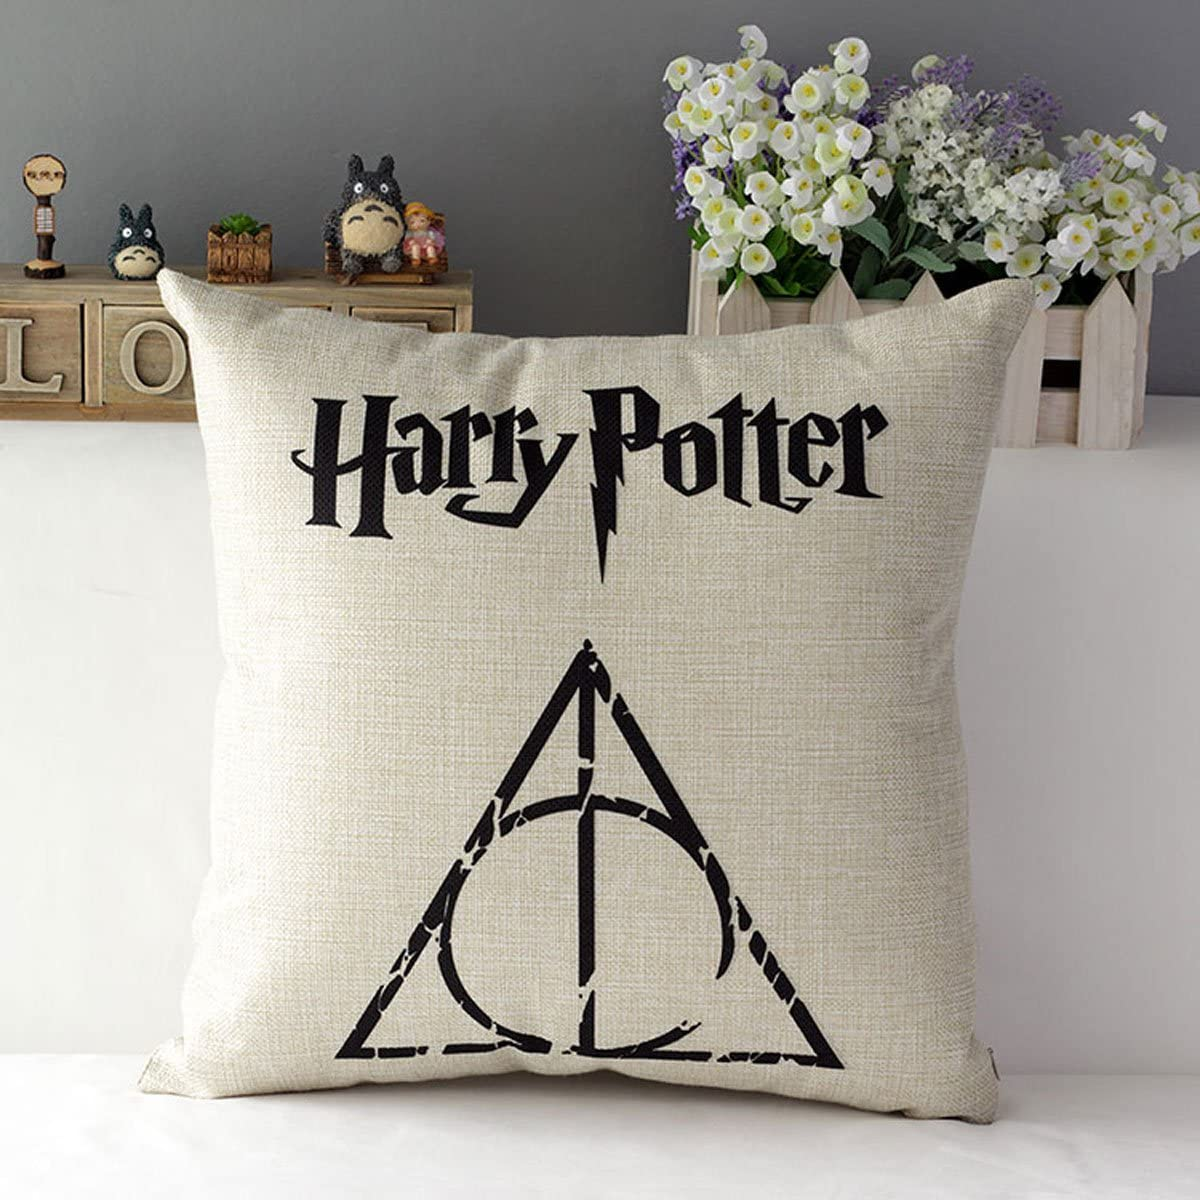 "TavasDecor 17"" Hogwarts Harry Potter Decorative Home Sofa Throw Pillow Case Cushion Cover - The Deathly Hallows"